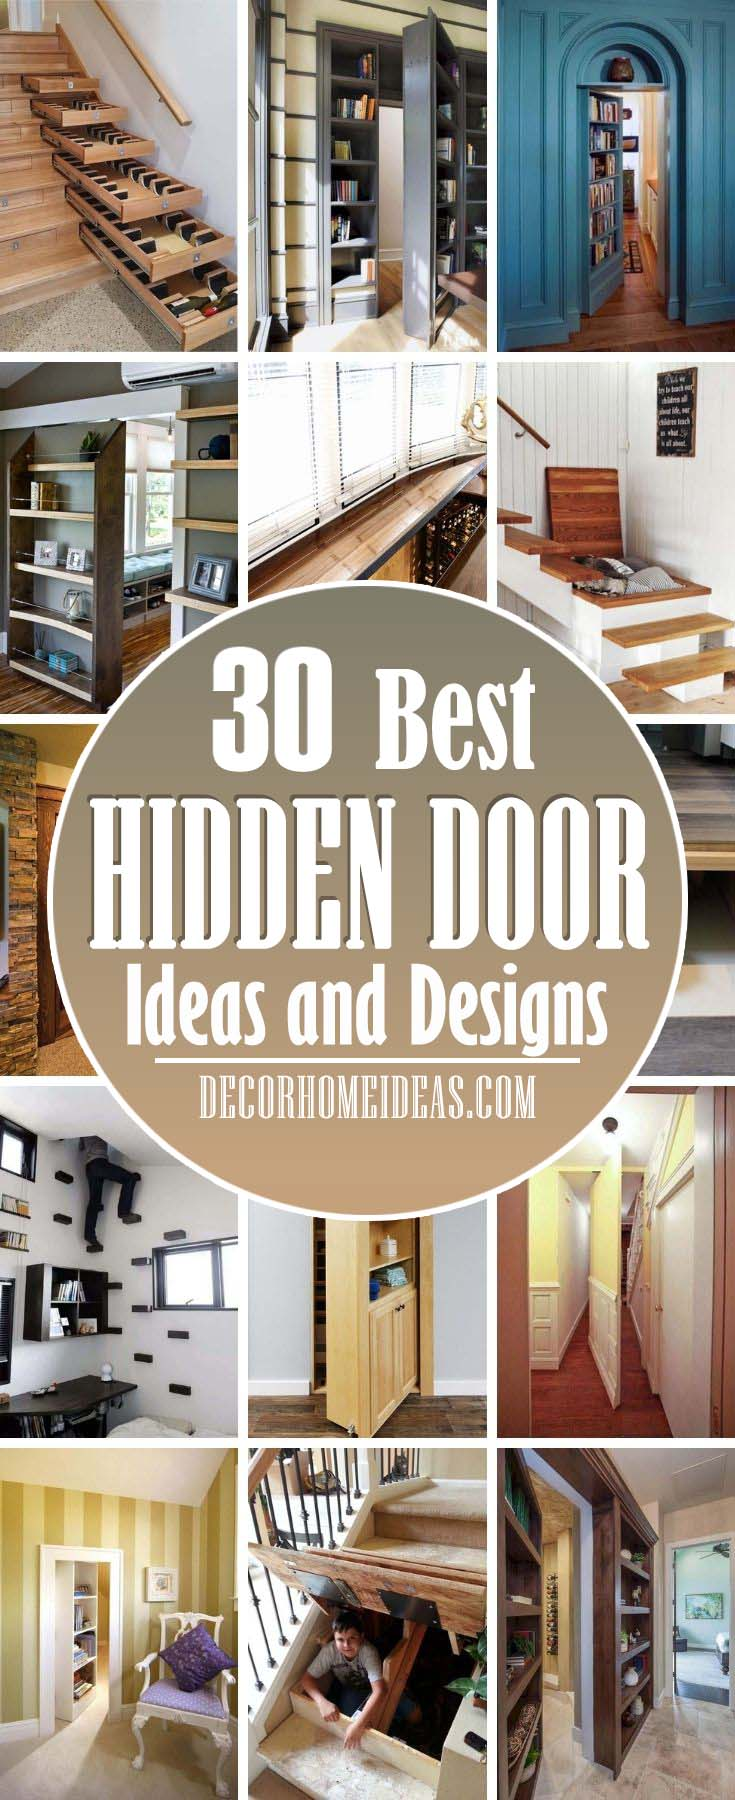 Best Clever Hidden Door Ideas. Discover a bit of fun and mystery with the top 50 best hidden door ideas. Explore entrances to secret rooms featuring hinged bookcases to walls and beyond. #decorhomeideas